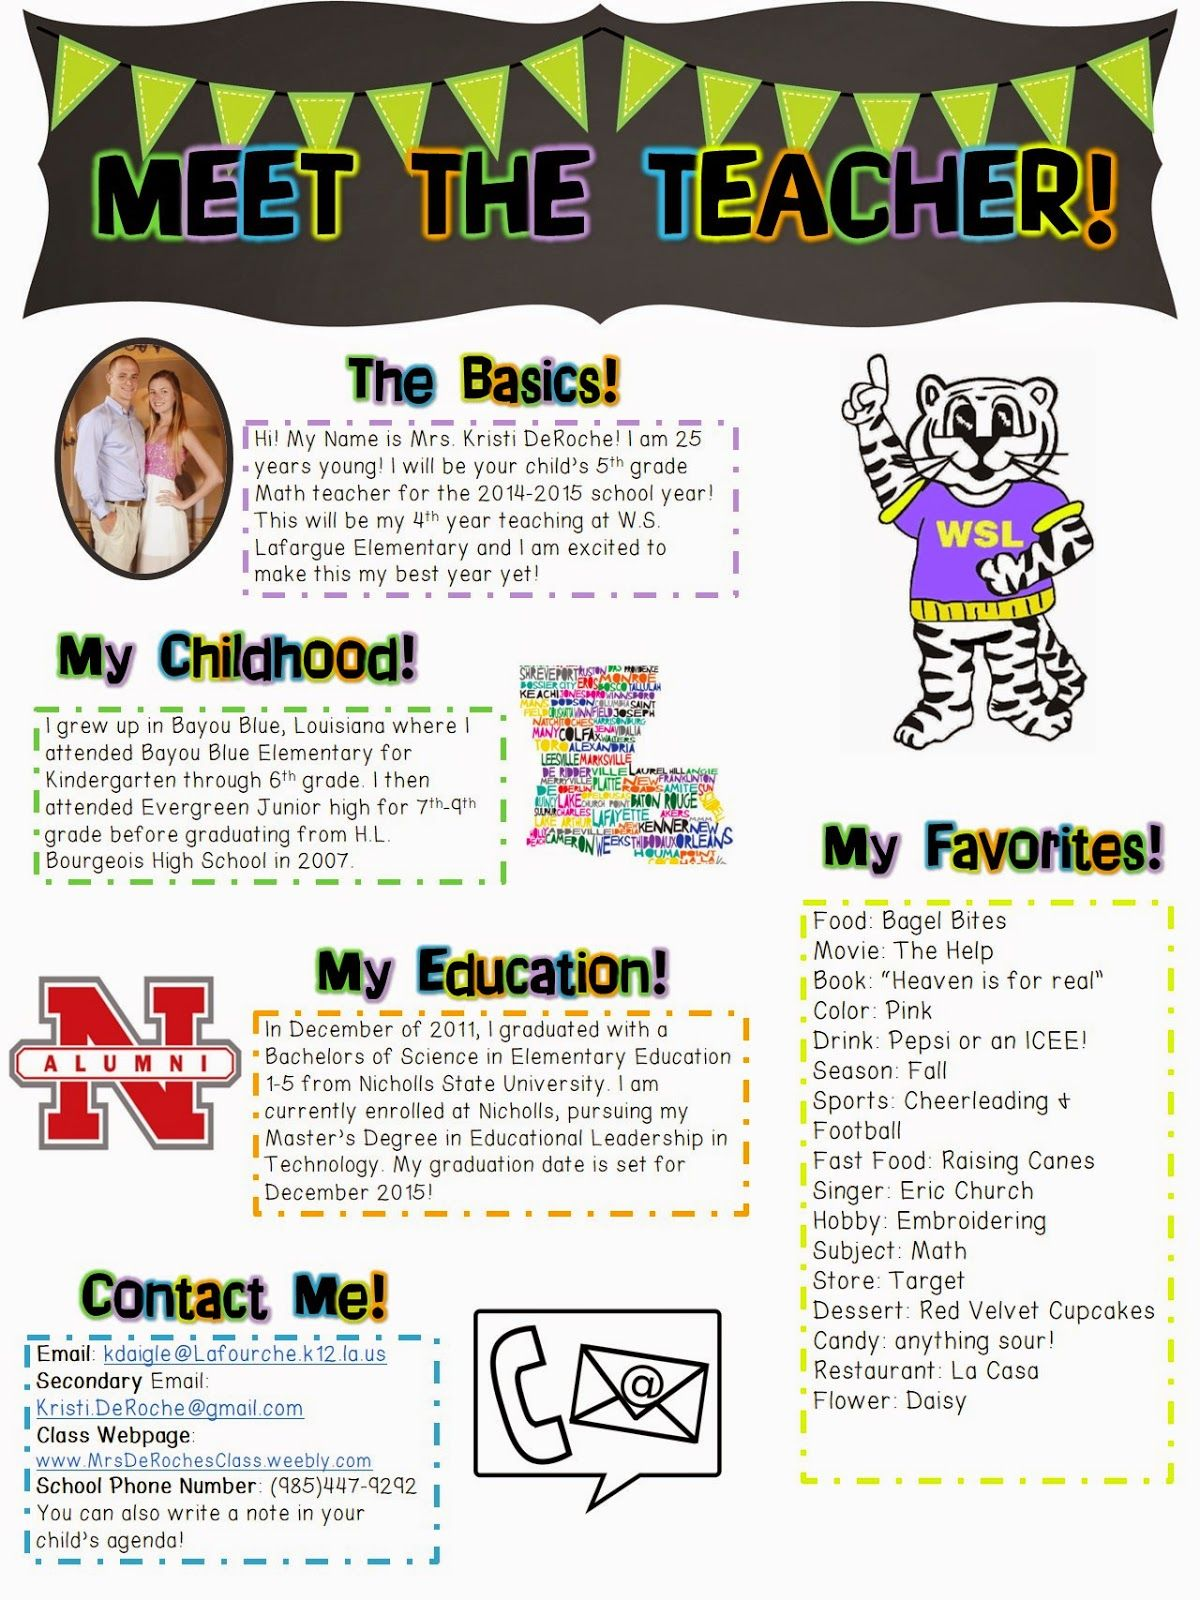 Meet the teacher, open house- Newsletter! | School Ideas ...